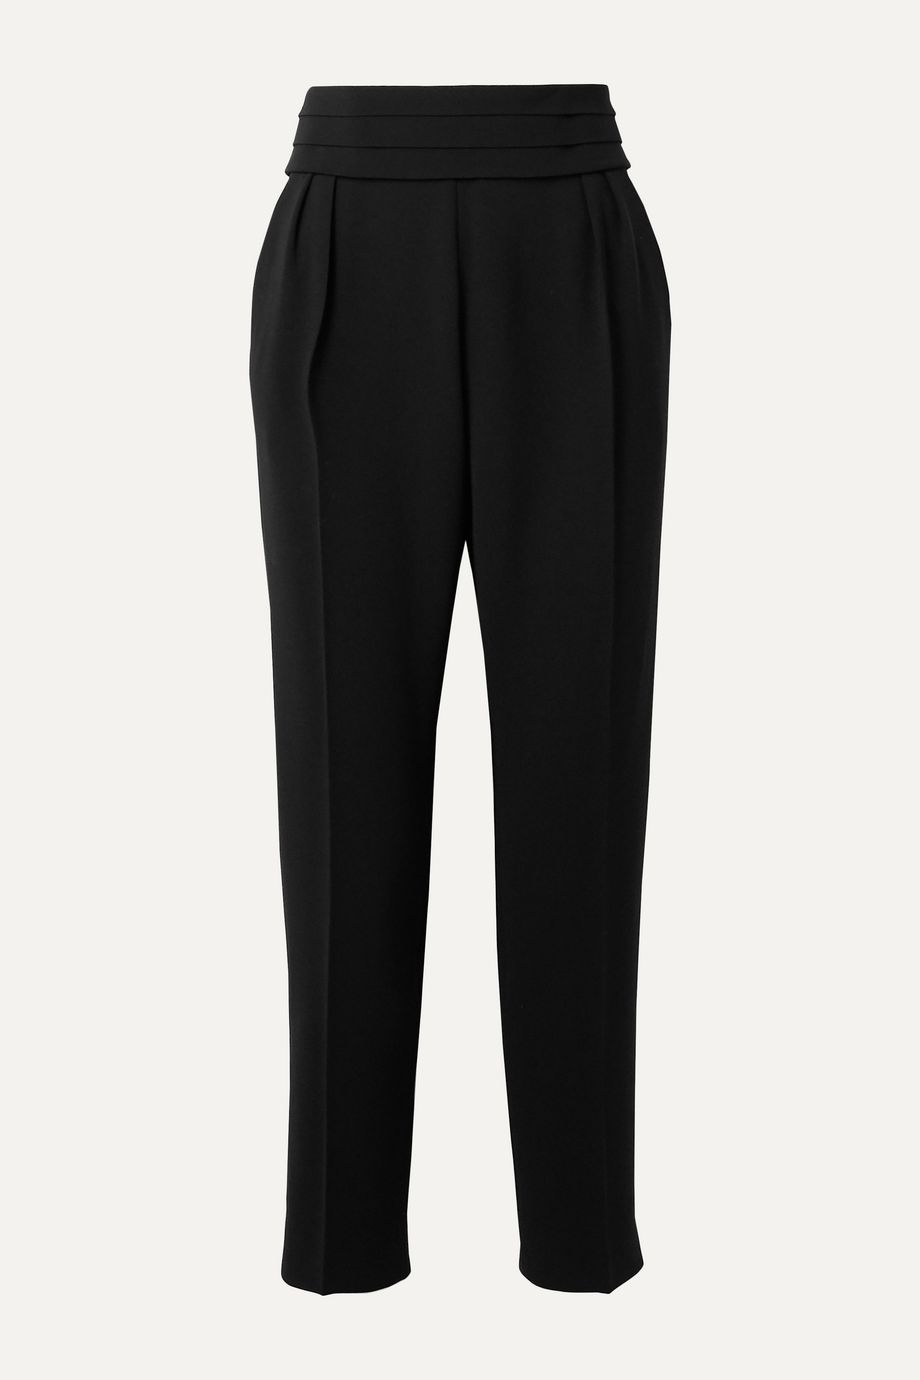 Max Mara Anagni belted pleated crepe tapered pants